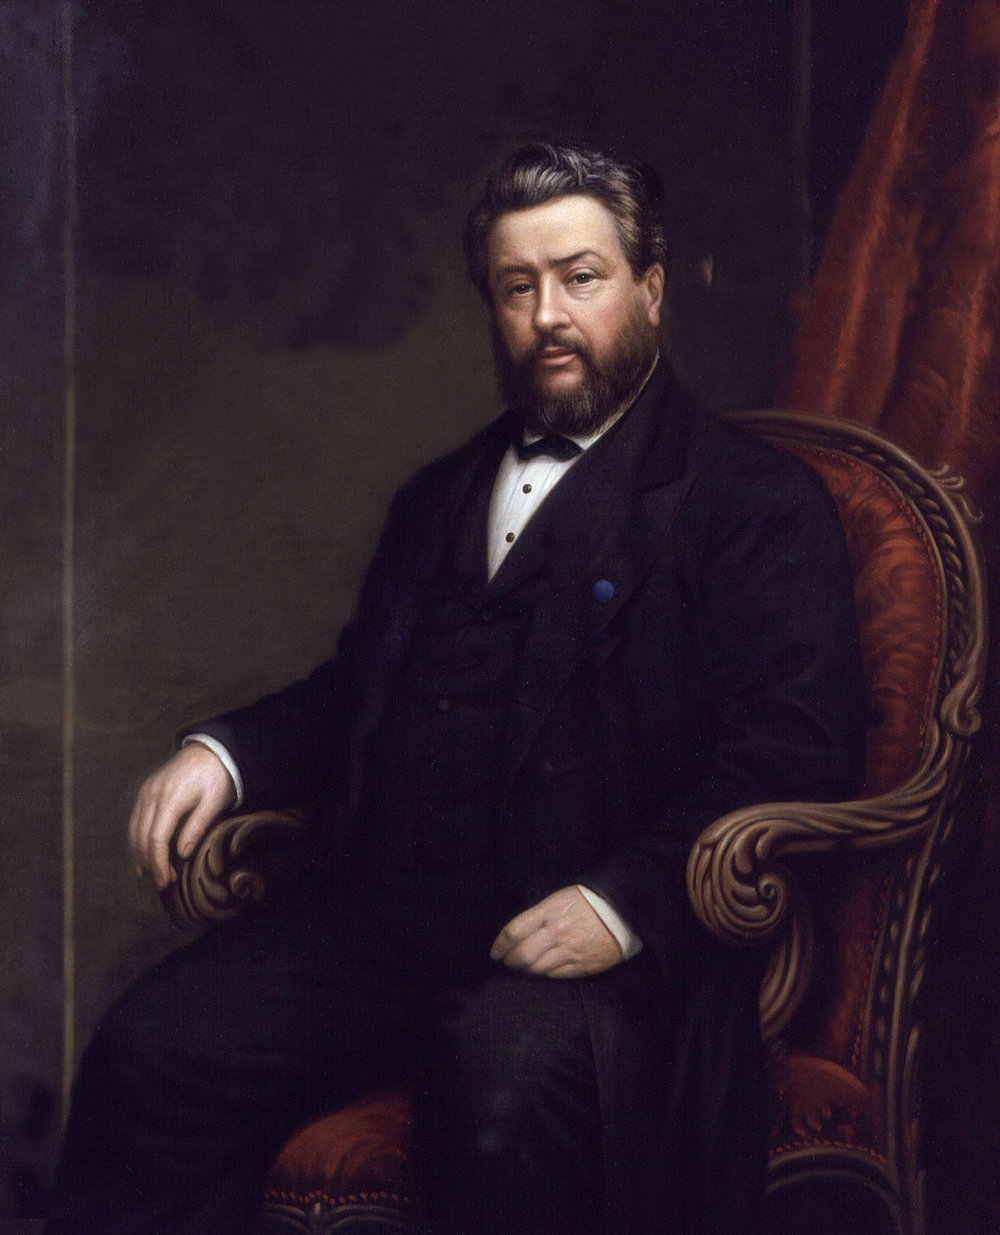 1200px-Charles_Haddon_Spurgeon_by_Alexander_Melville.jpg